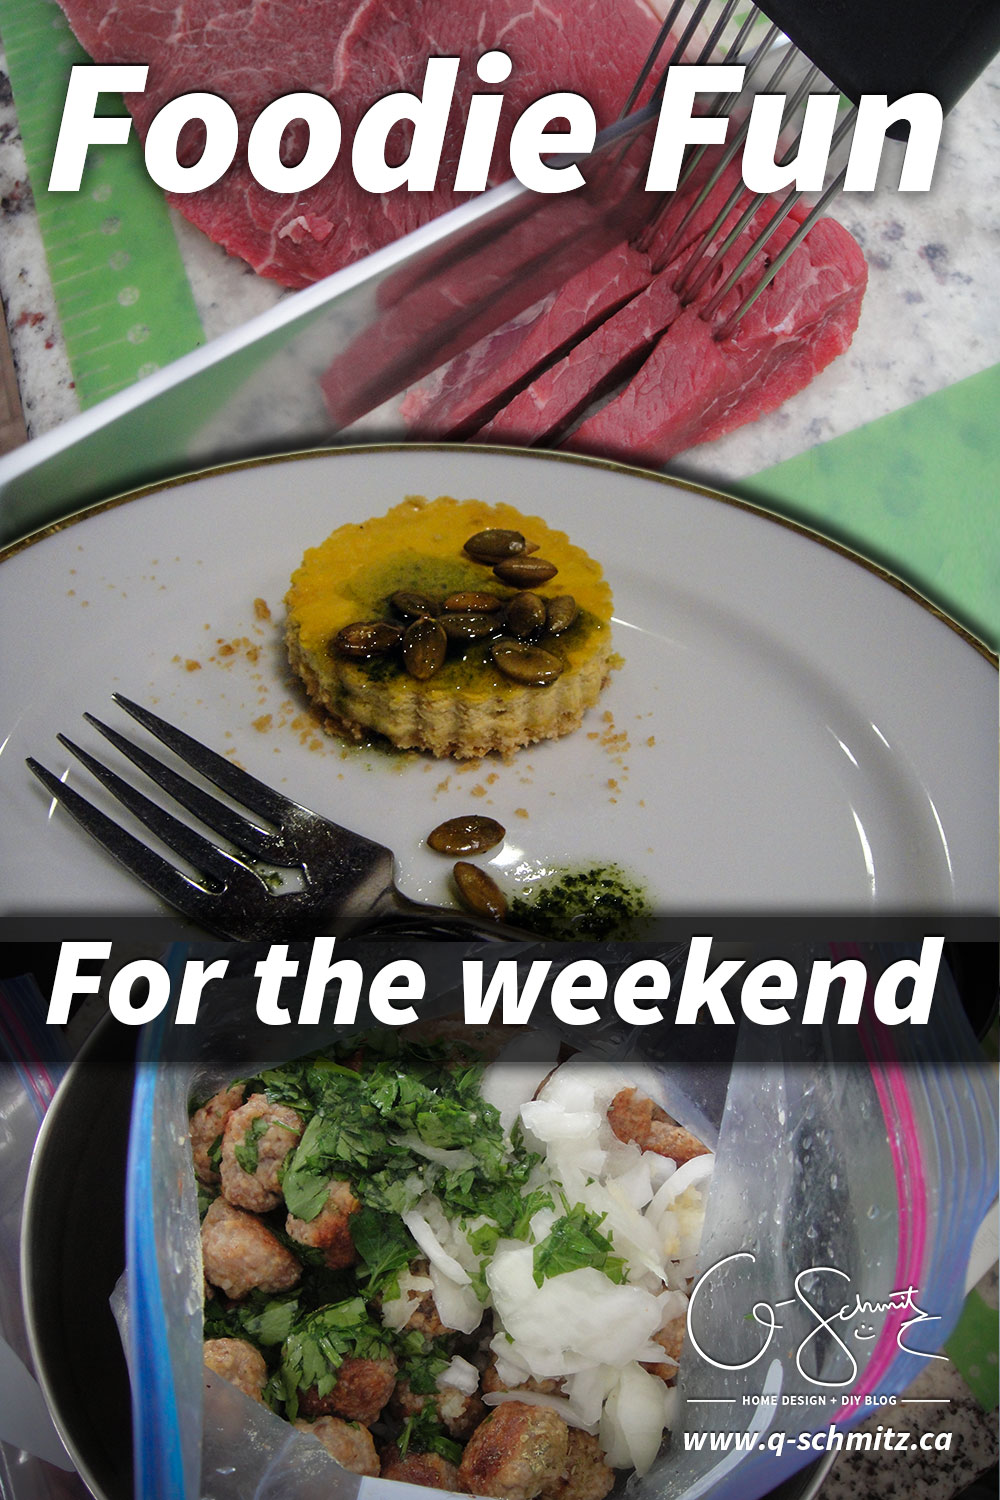 Last weekend I had some foodie fun! The Husband and I attended the Feast of Local Flavours and spent Sunday afternoon preparing freezer meals with Pampered Chef